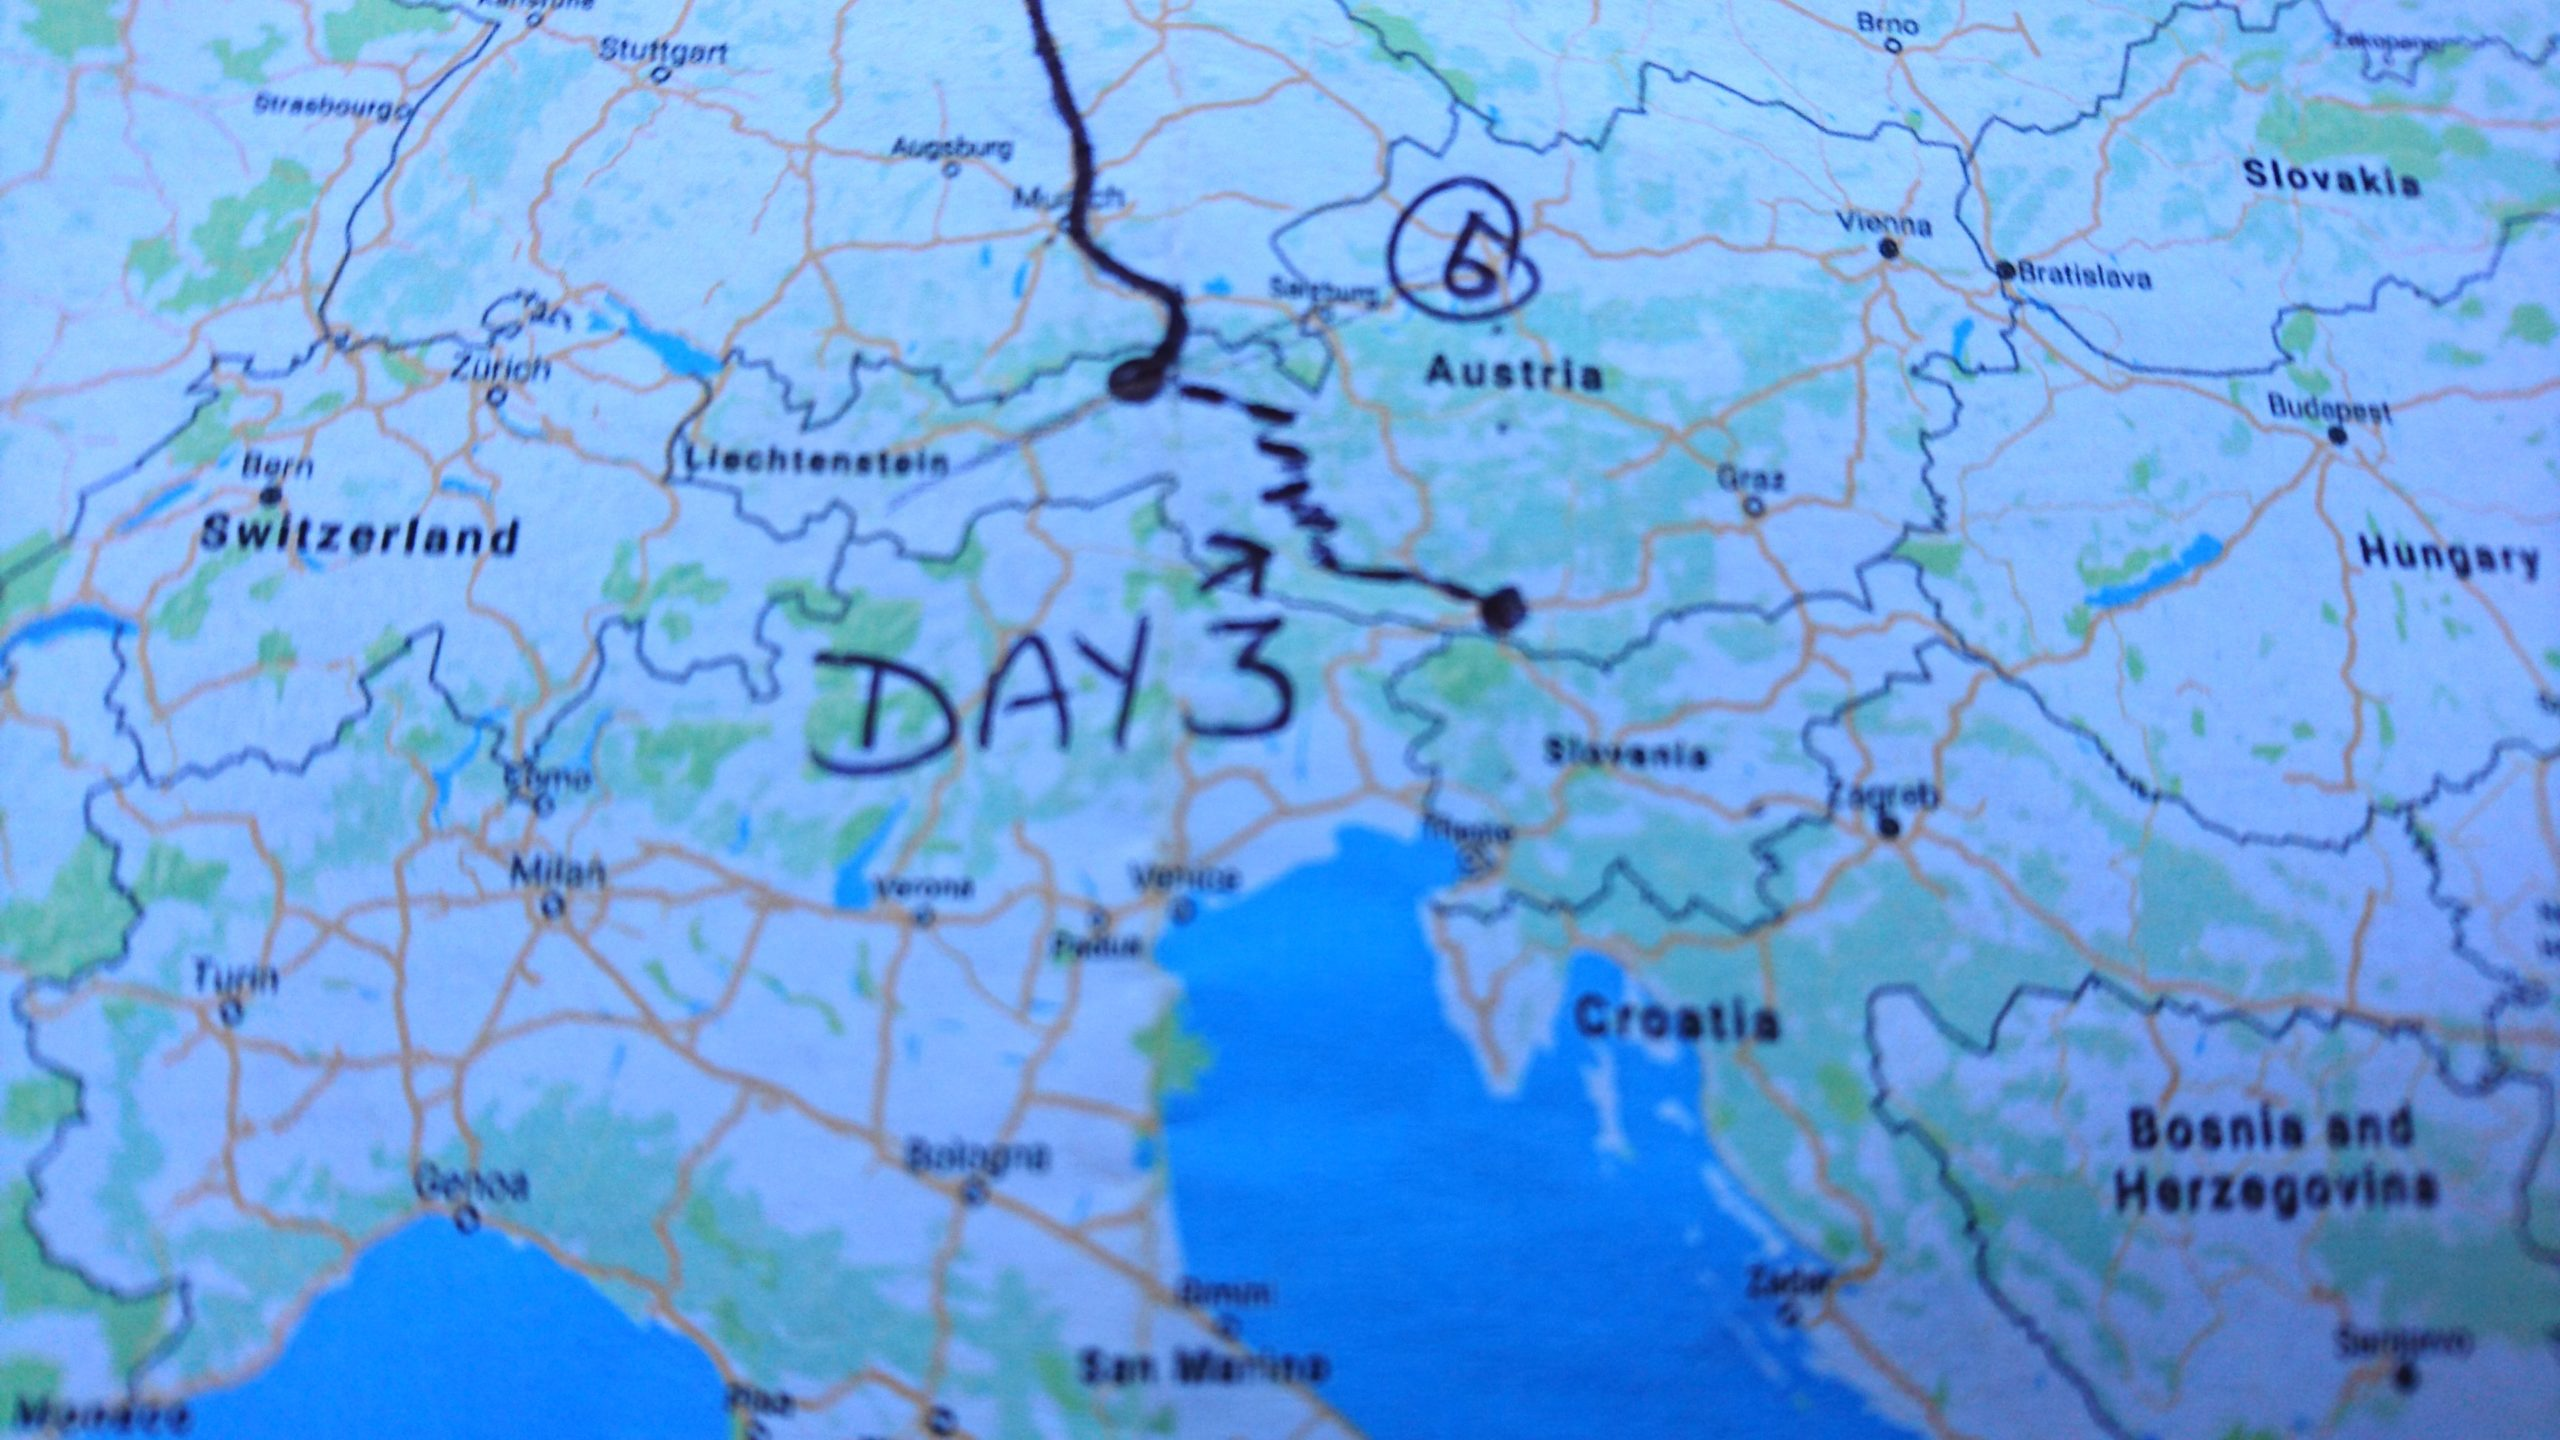 European motorcycle tour Grossglockner Pass – 20 Countries in 20 Days (Day 3)